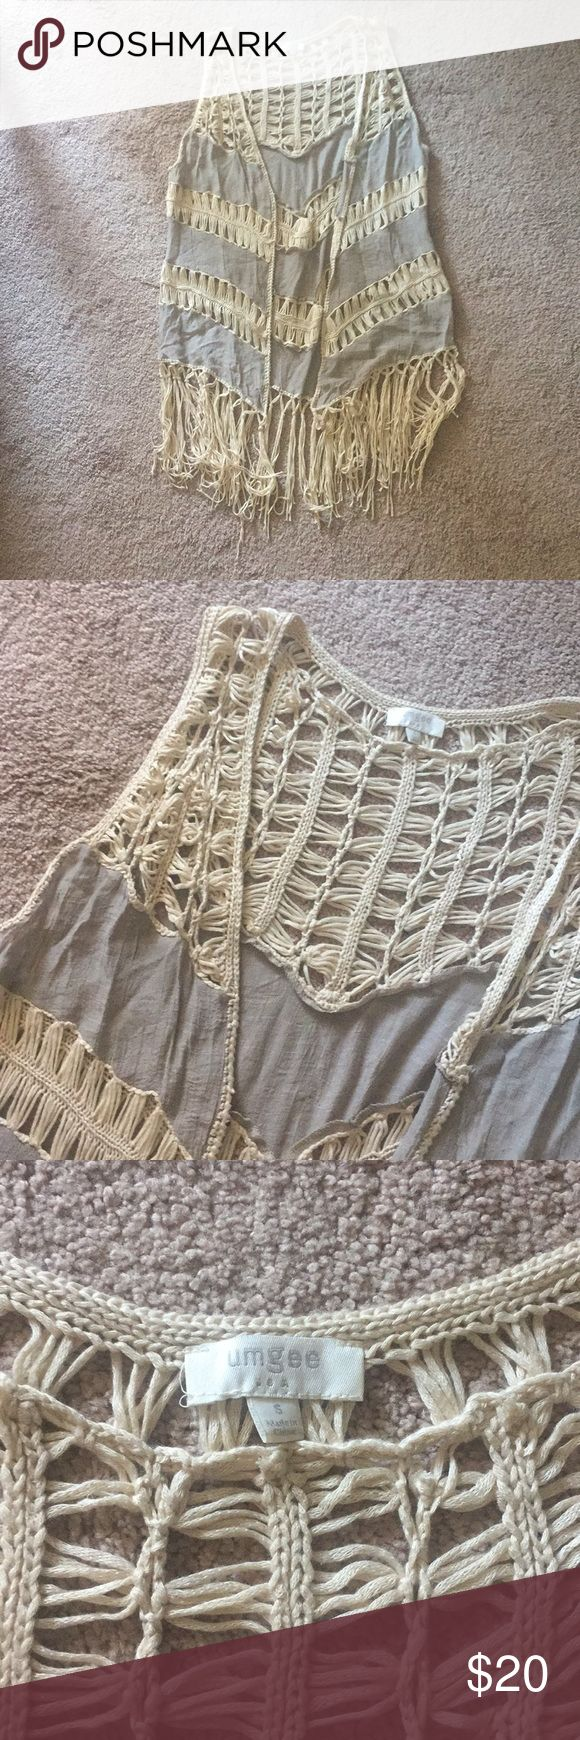 "UMGEE Fringe Crochet Sleeveless Kimono Vest Used, but excellent condition, gray-ish taupe color with off white/ beige fringe throughout, lightweight and great for layering, 60% cotton 40% polyester, bust laying flat 18"" length with fringe is 39"" Umgee Jackets & Coats Vests"